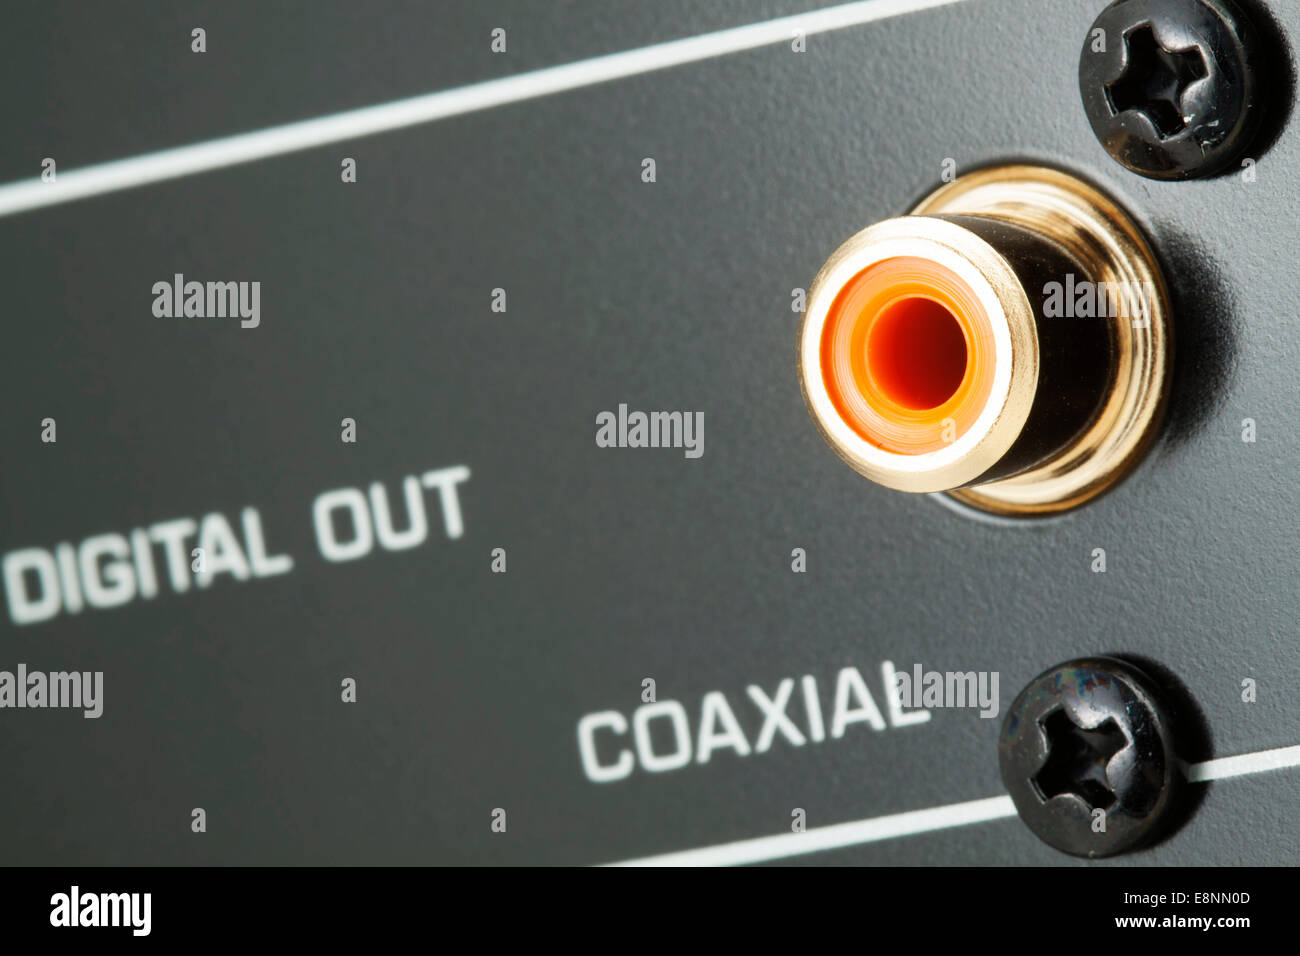 Coaxial digital output, gold plated, narrow focus - Stock Image